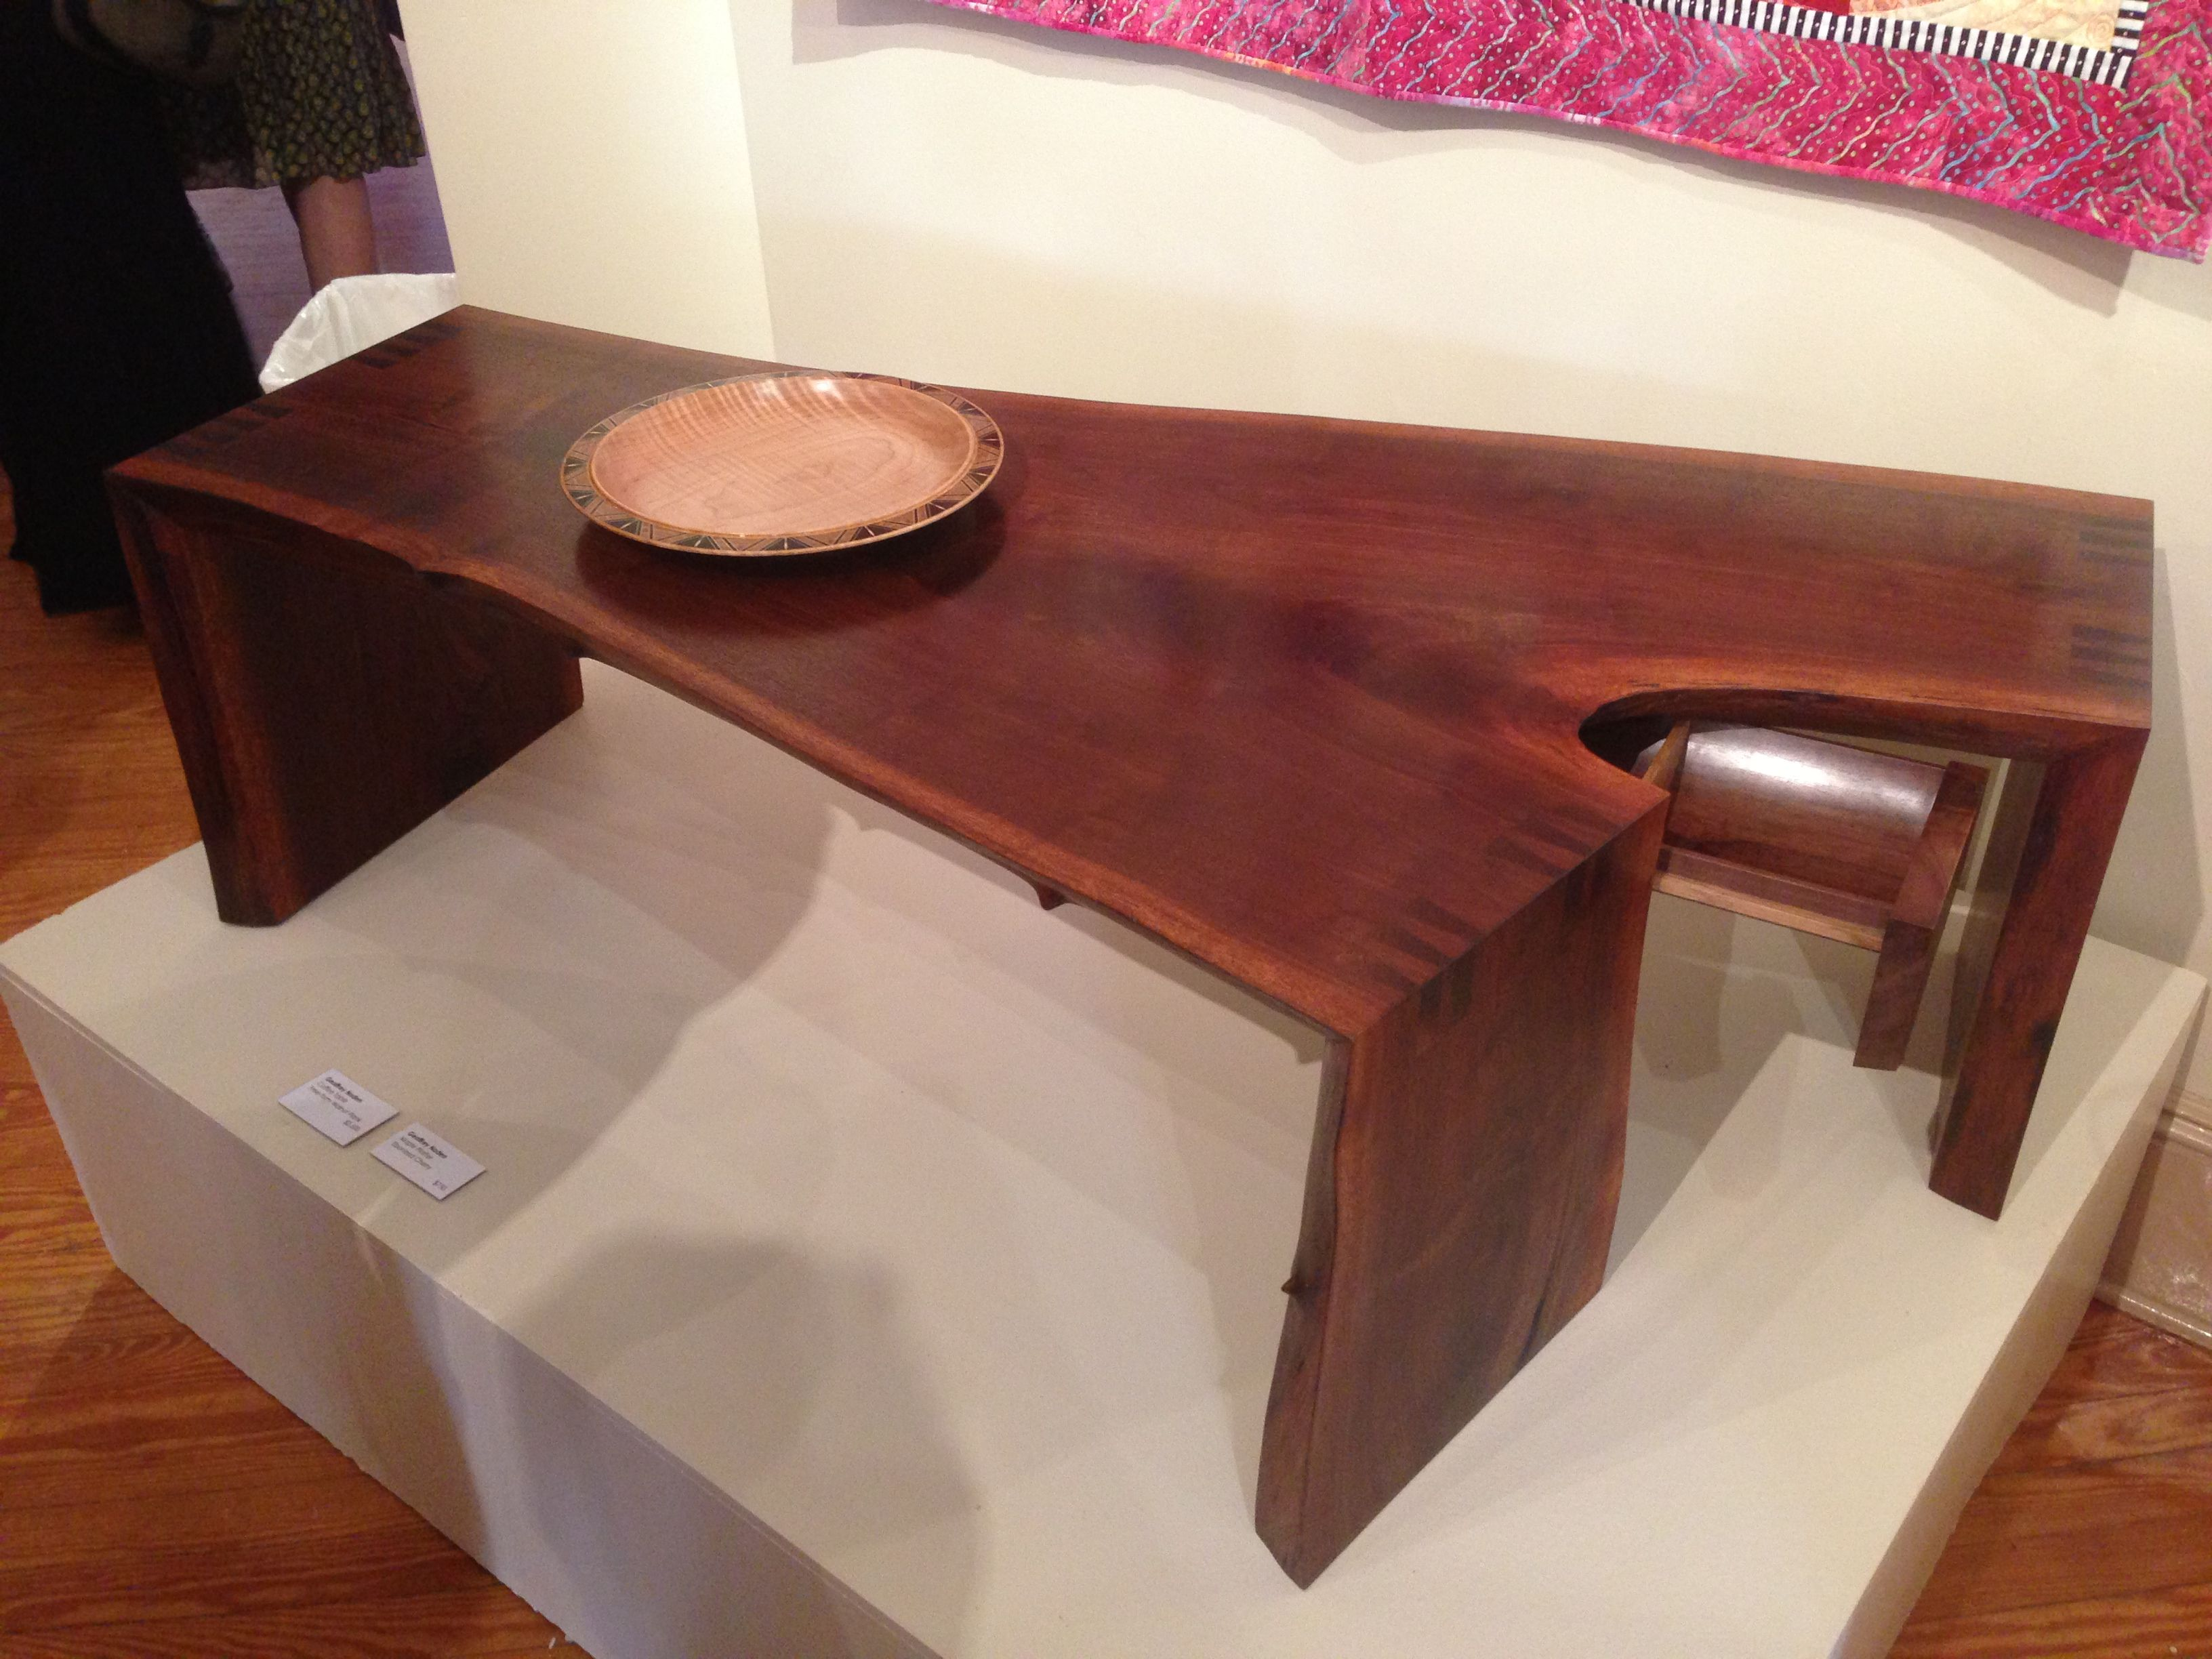 Couchtisch Emblaze Slice Of Tree Becomes Coffee Table Home Pinterest